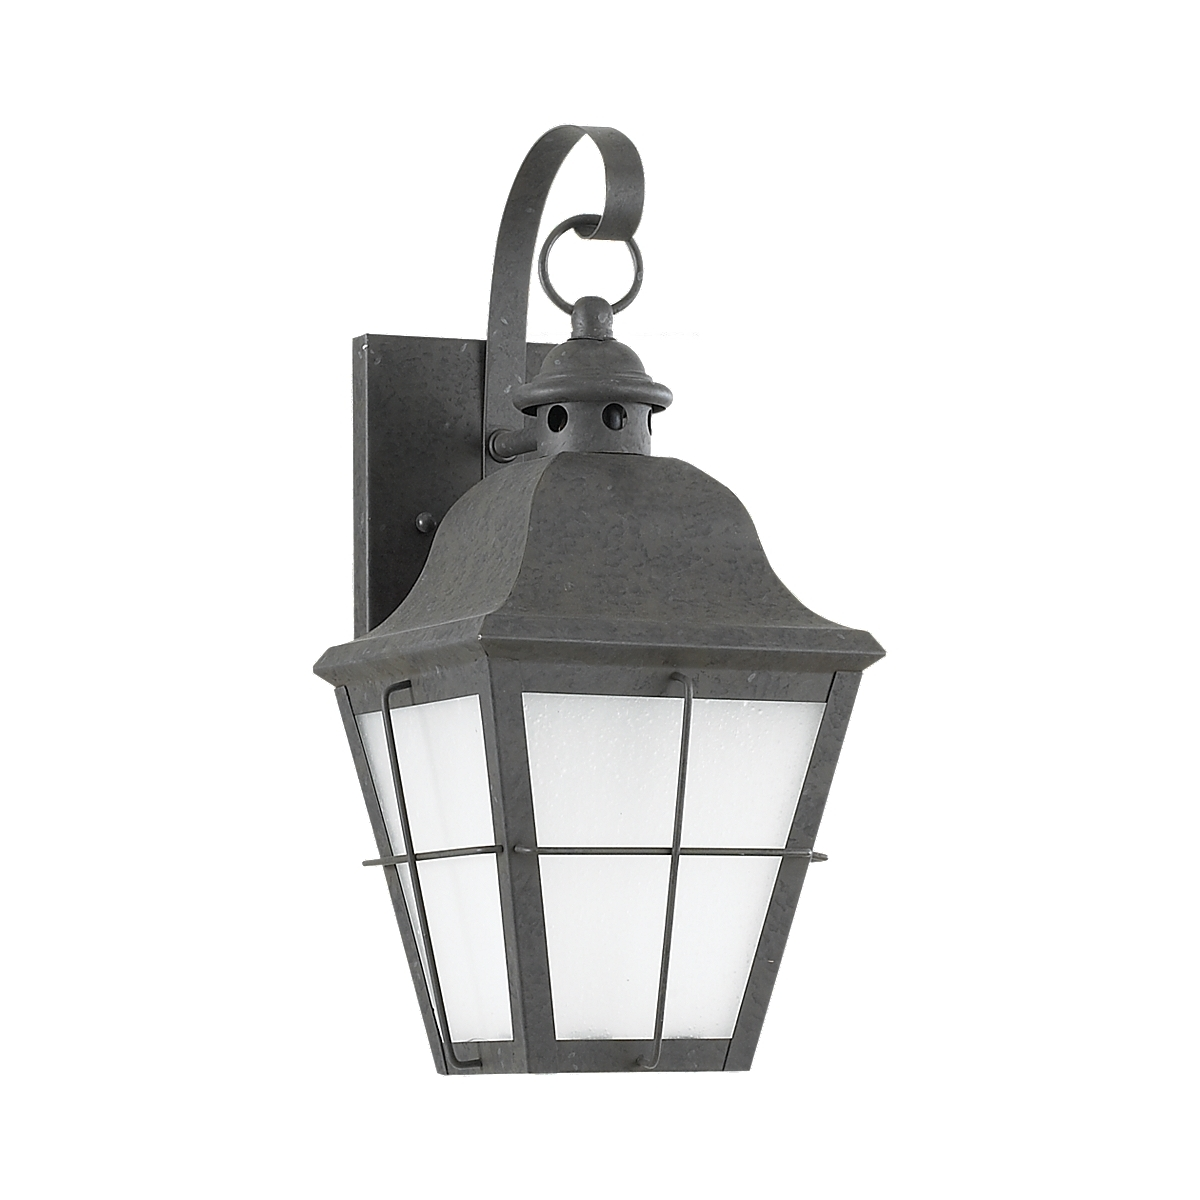 Sea Gull 89062BLE-46 Chatham 1 Light 15 inch Oxidized Bronze Outdoor Wall Lantern in No Photocell, Energy Efficient photo